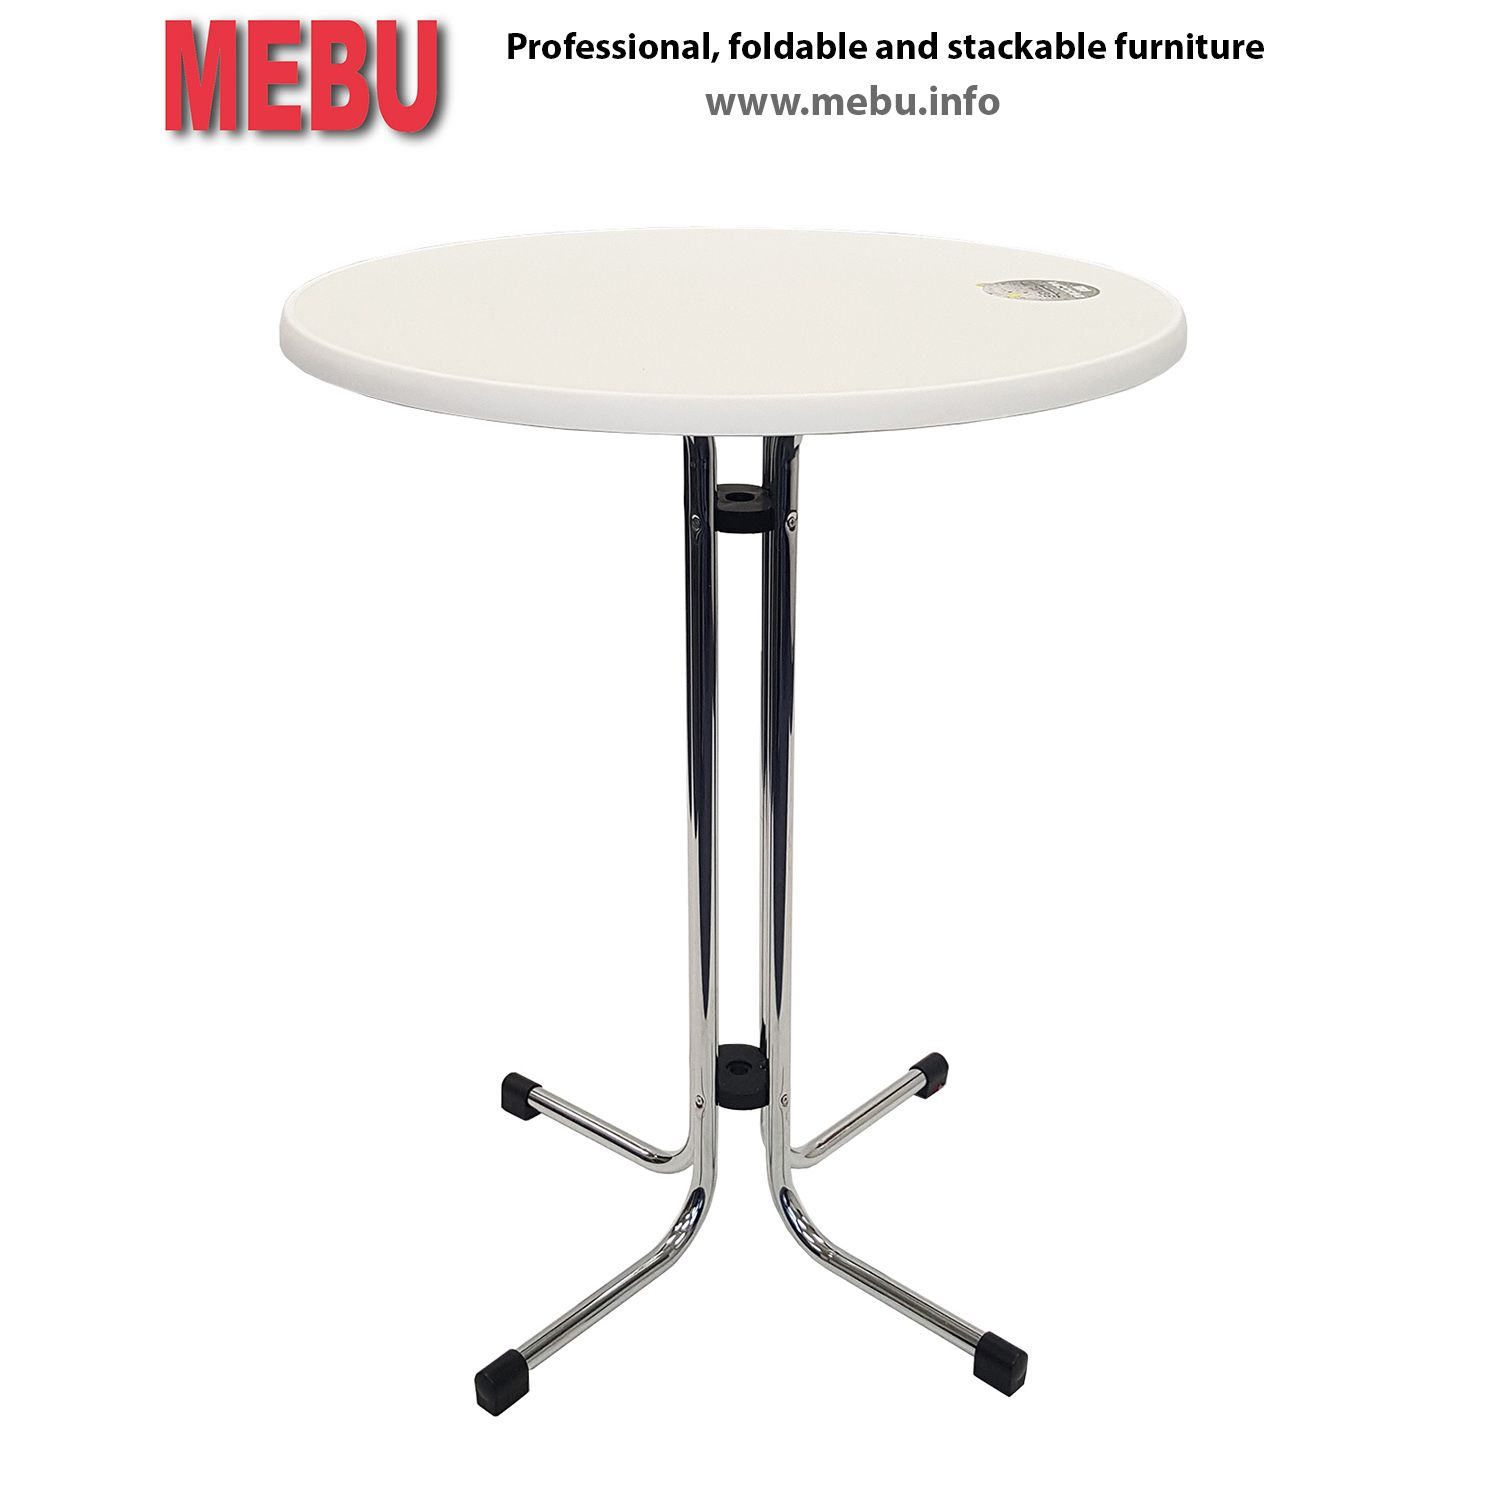 chromated party table limburg with Ø85cm sevelit table top white